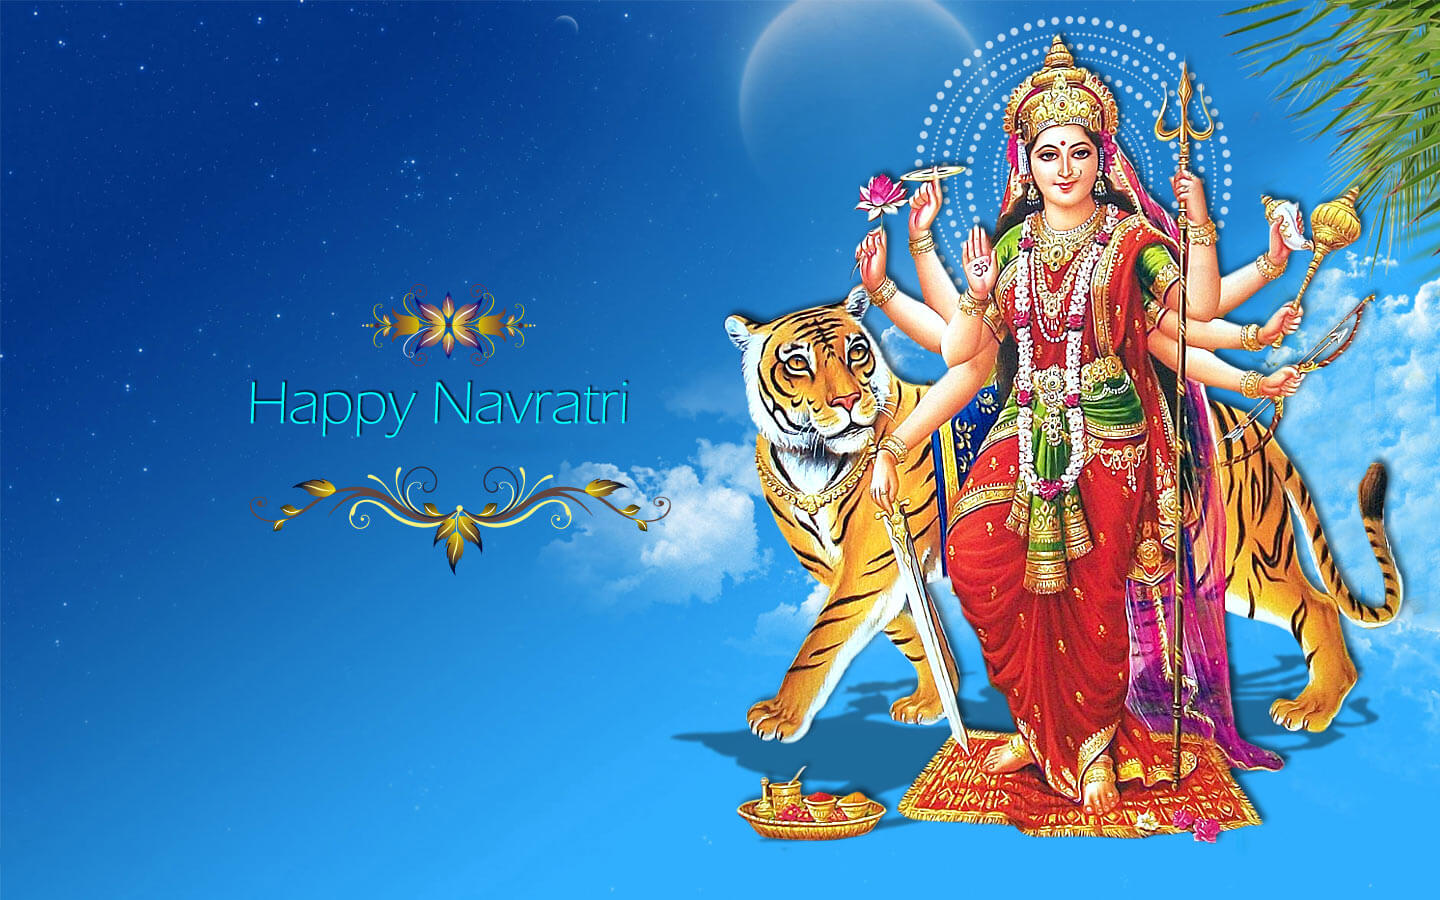 happy navratri 2018 HD wallpaper durga mata image